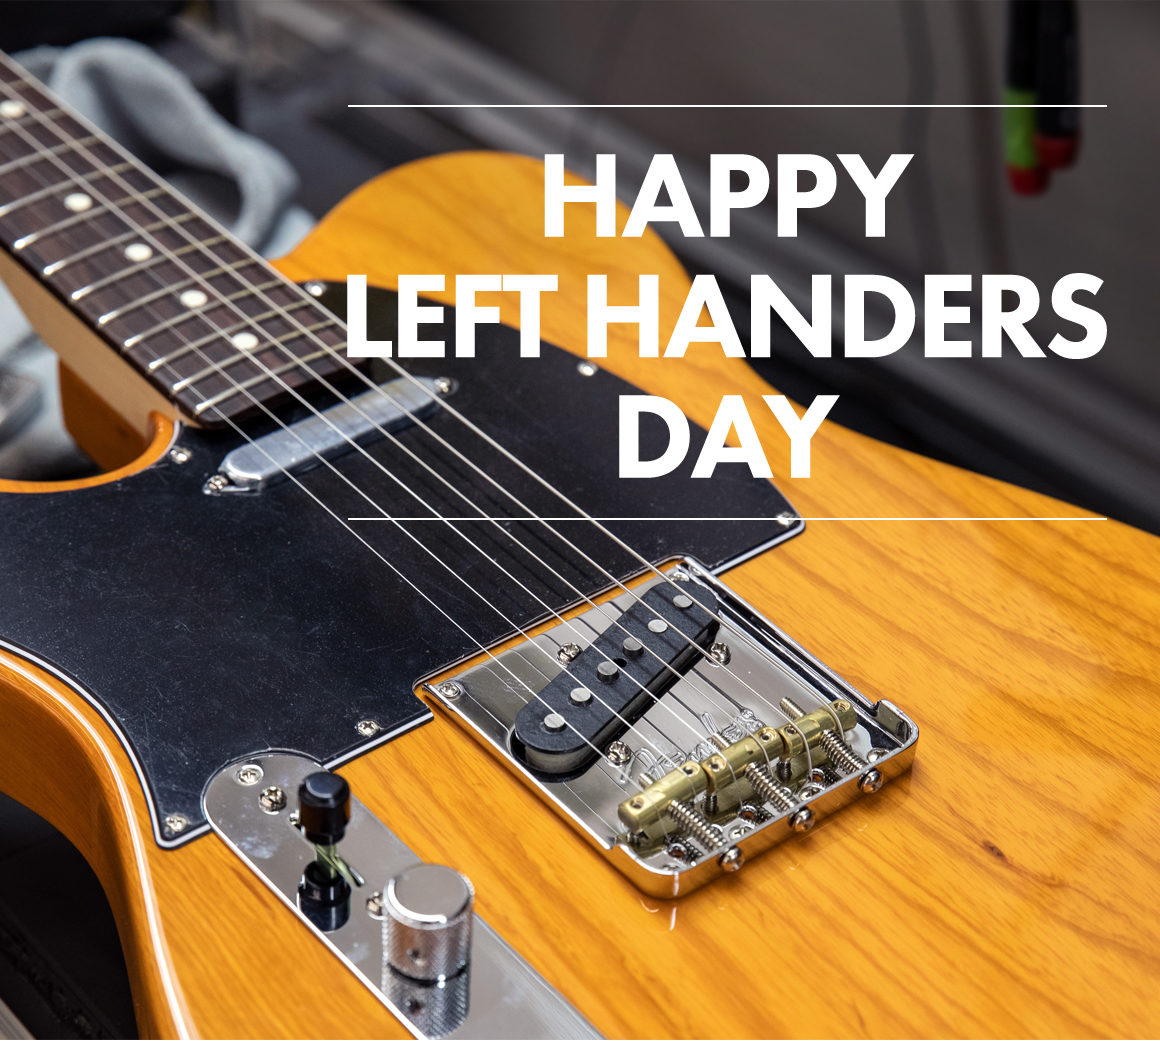 Left Handers Day Celebration